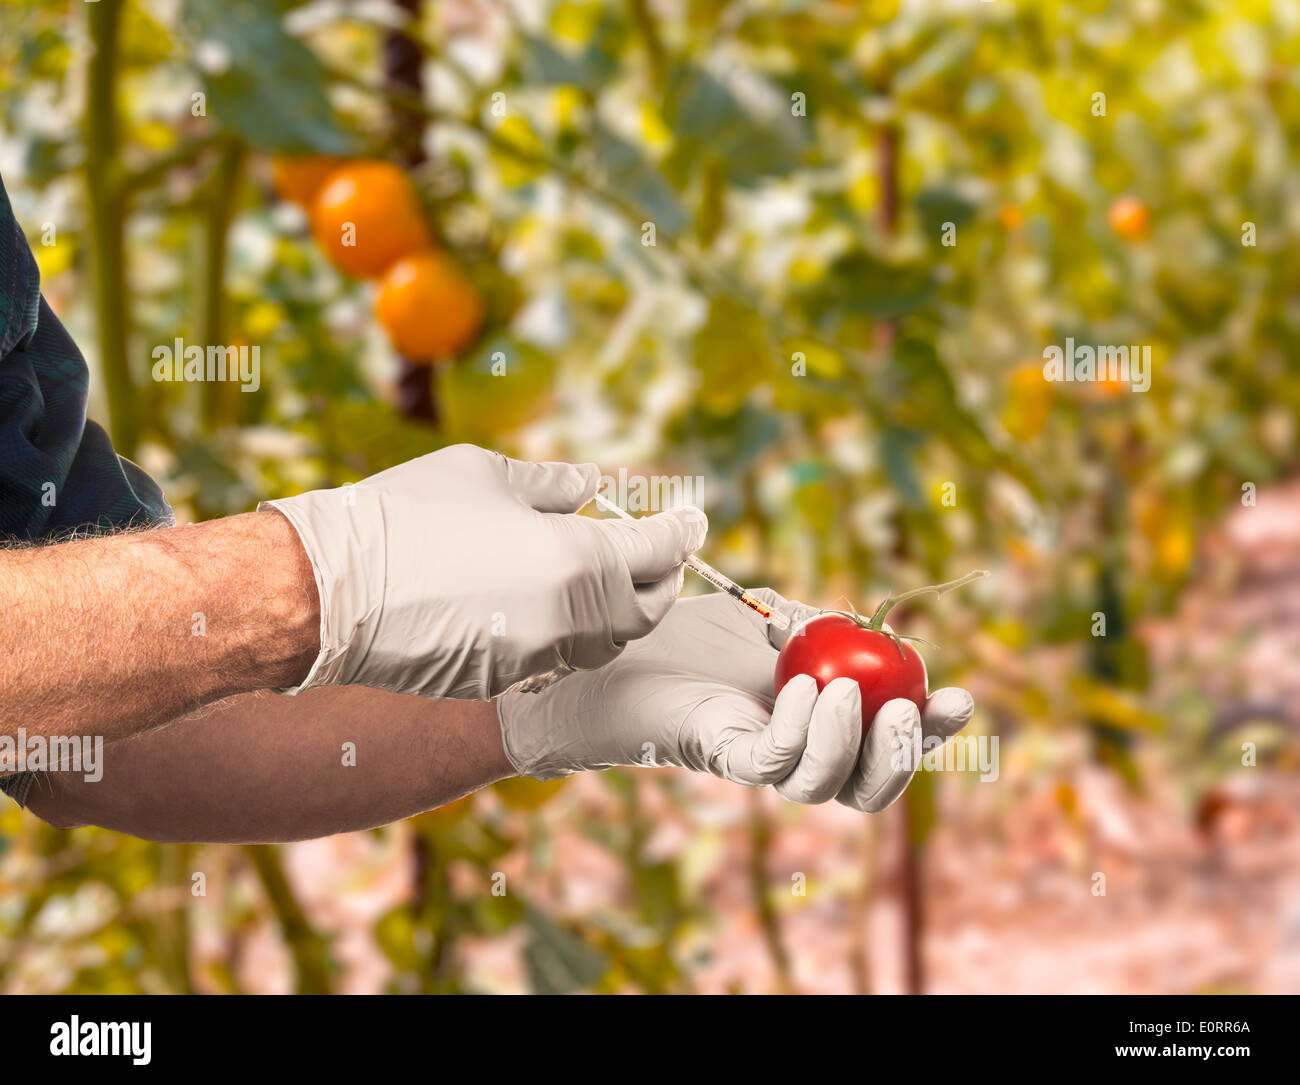 Science - Genetically modified food concept - Scientist injecting fluid into a tomato outdoors - Stock Image